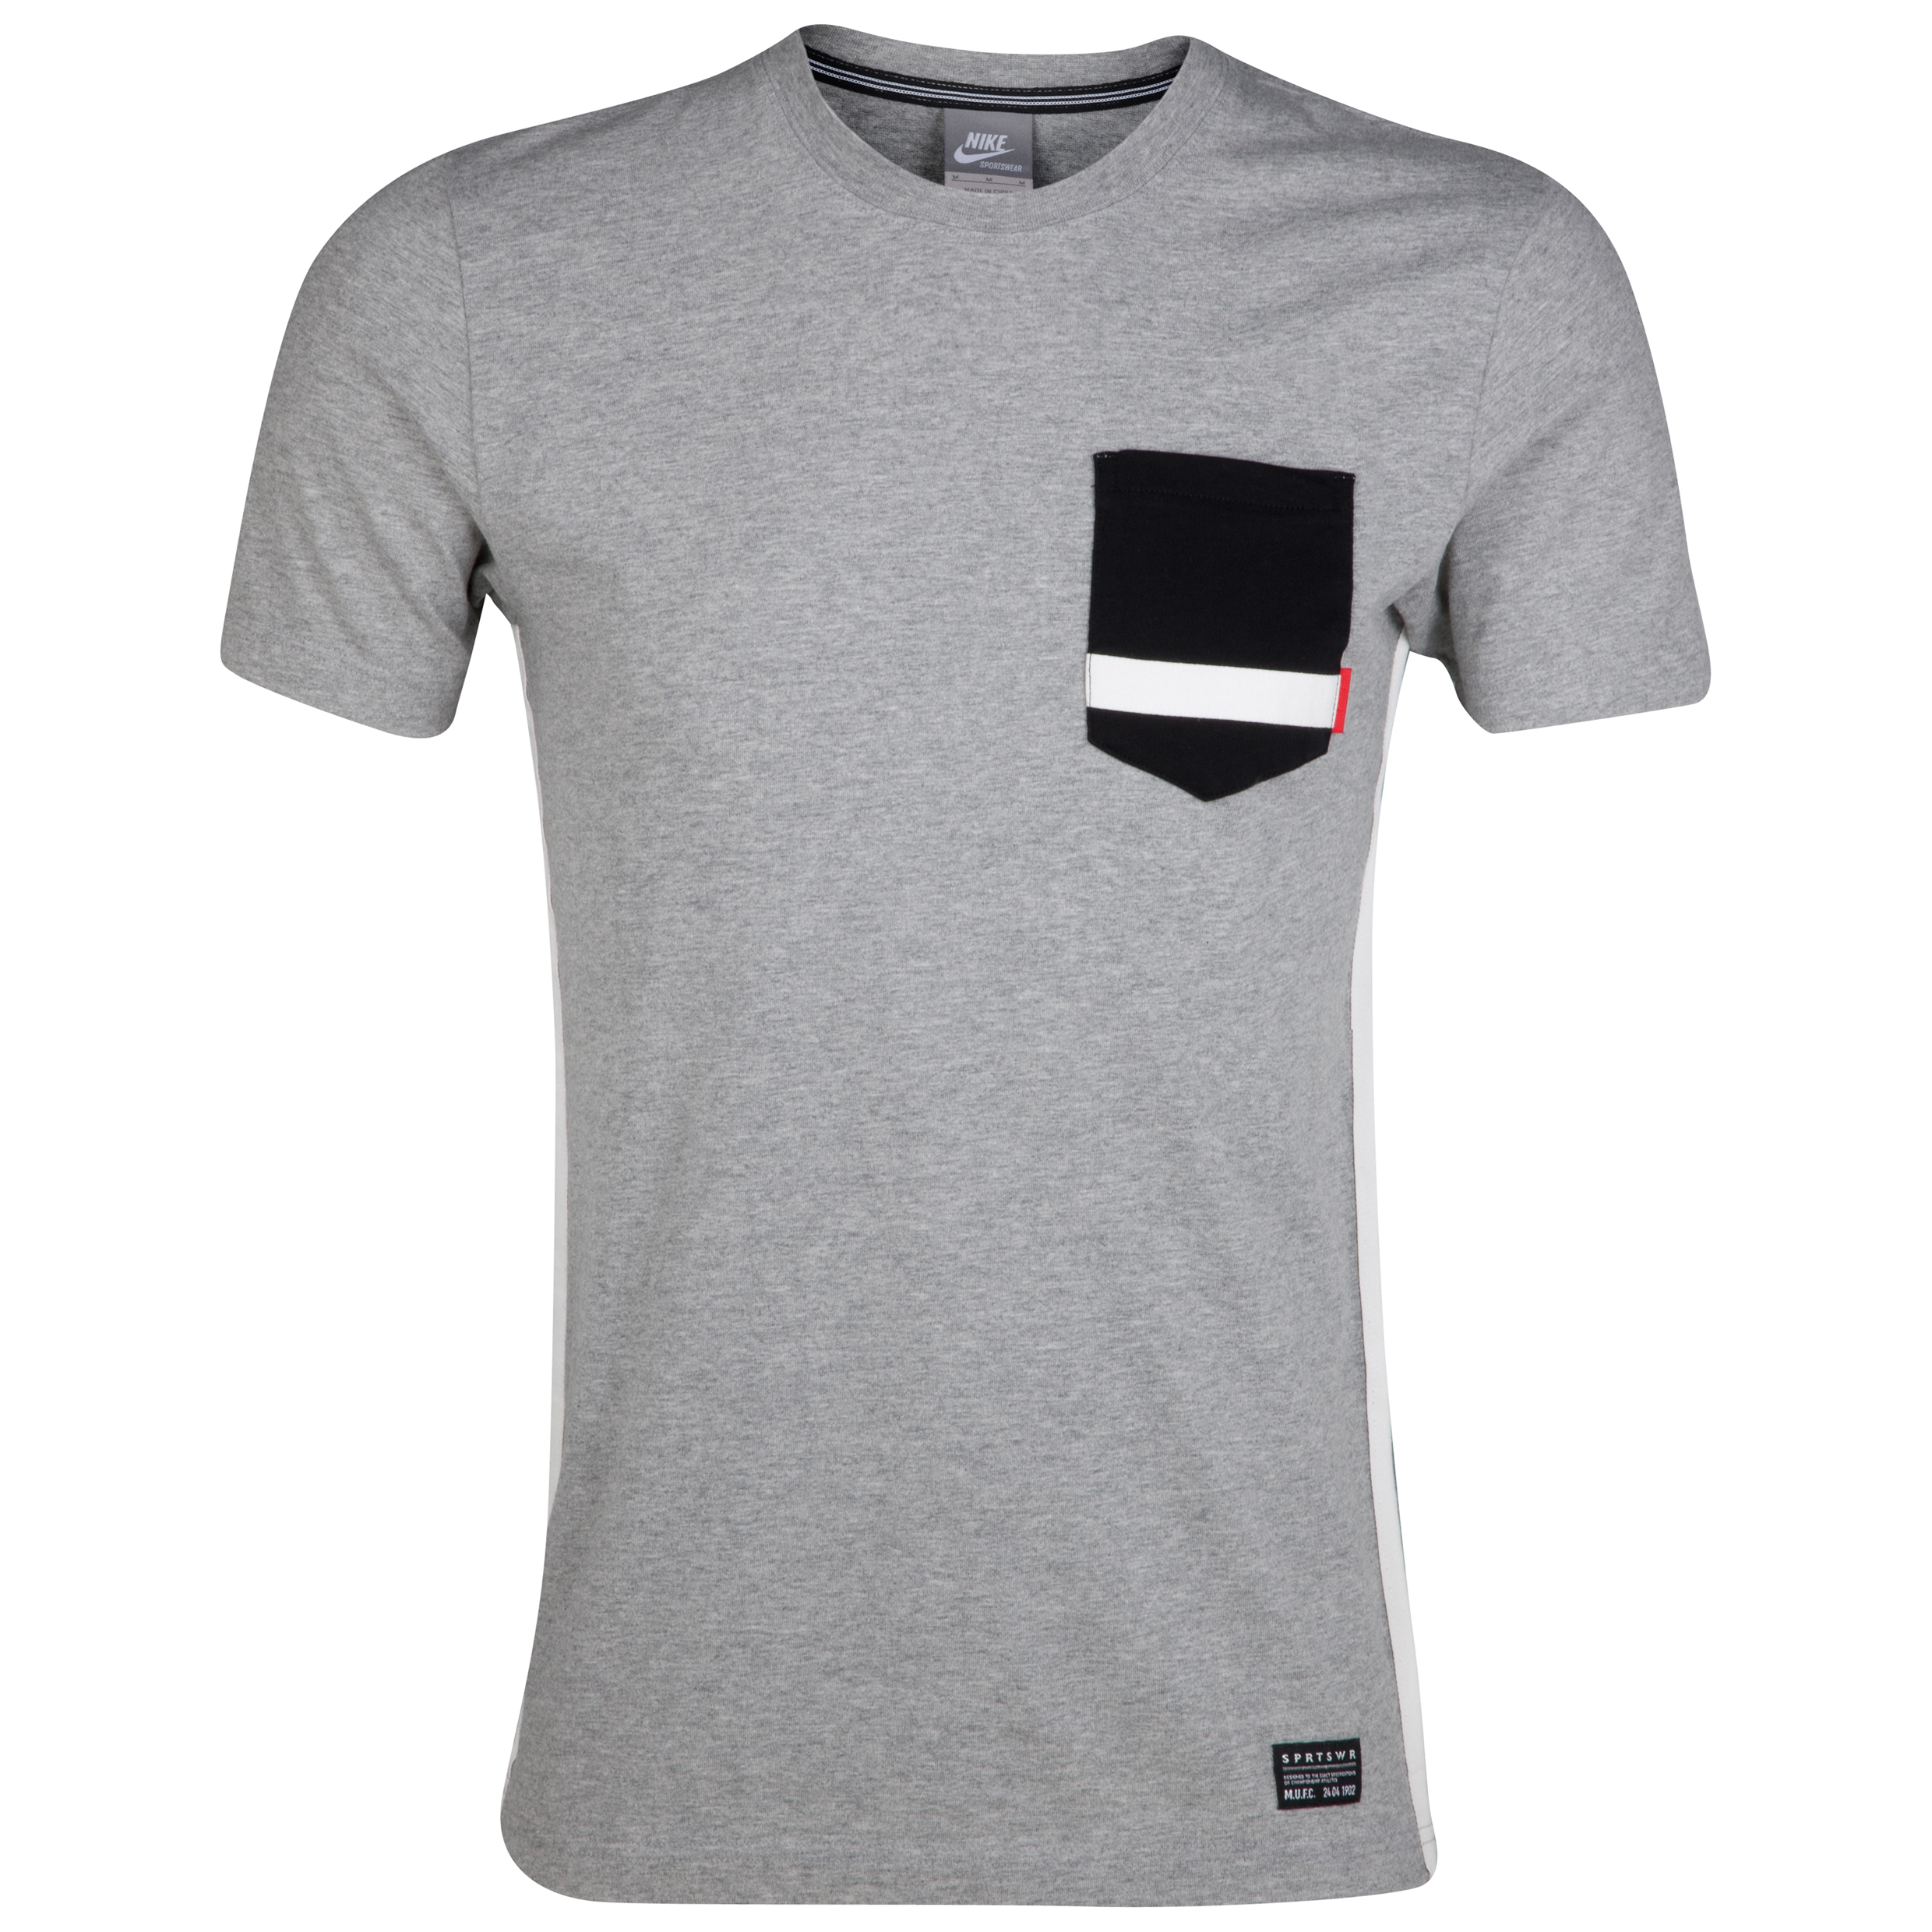 Manchester United NSW Pocket T-Shirt - Dark Grey Heather